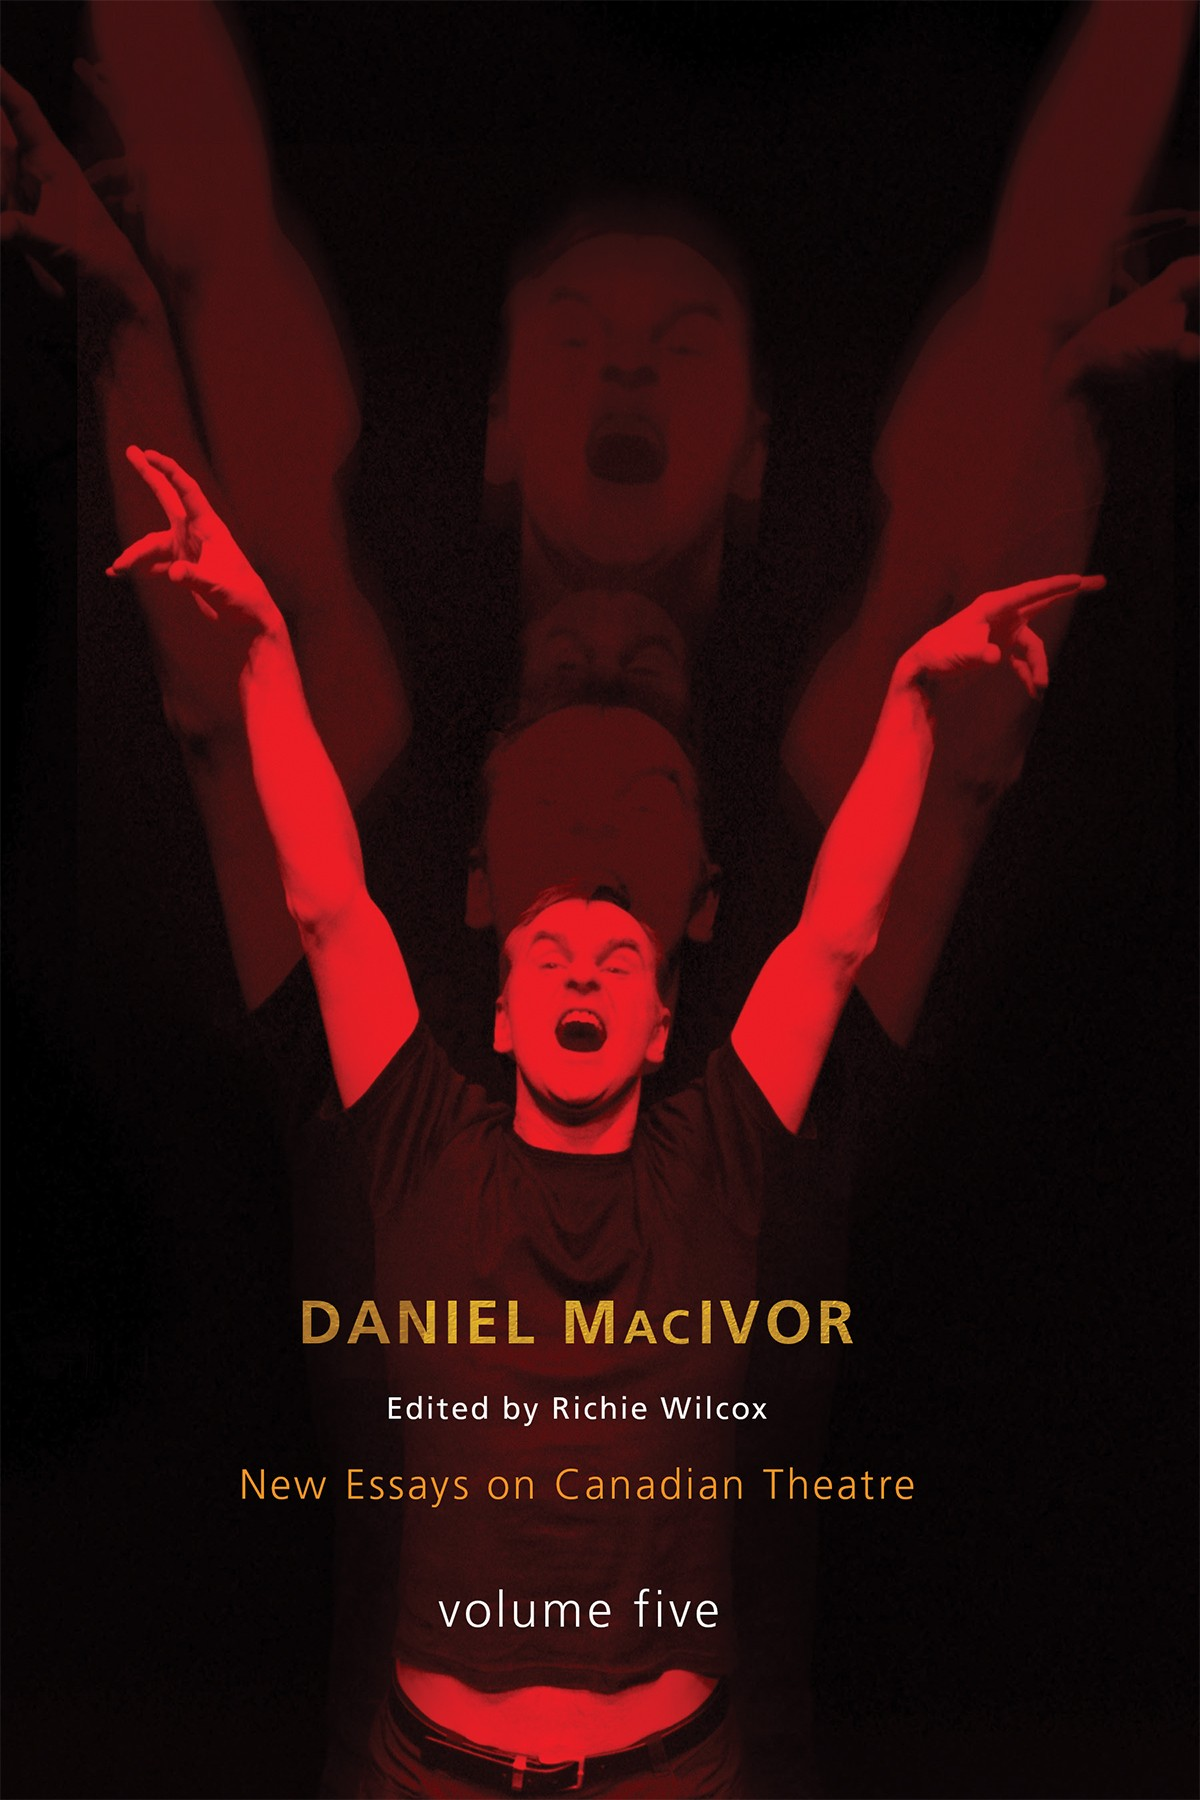 daniel macivor new essays on canadian theatre print new daniel macivor new essays on canadian theatre print